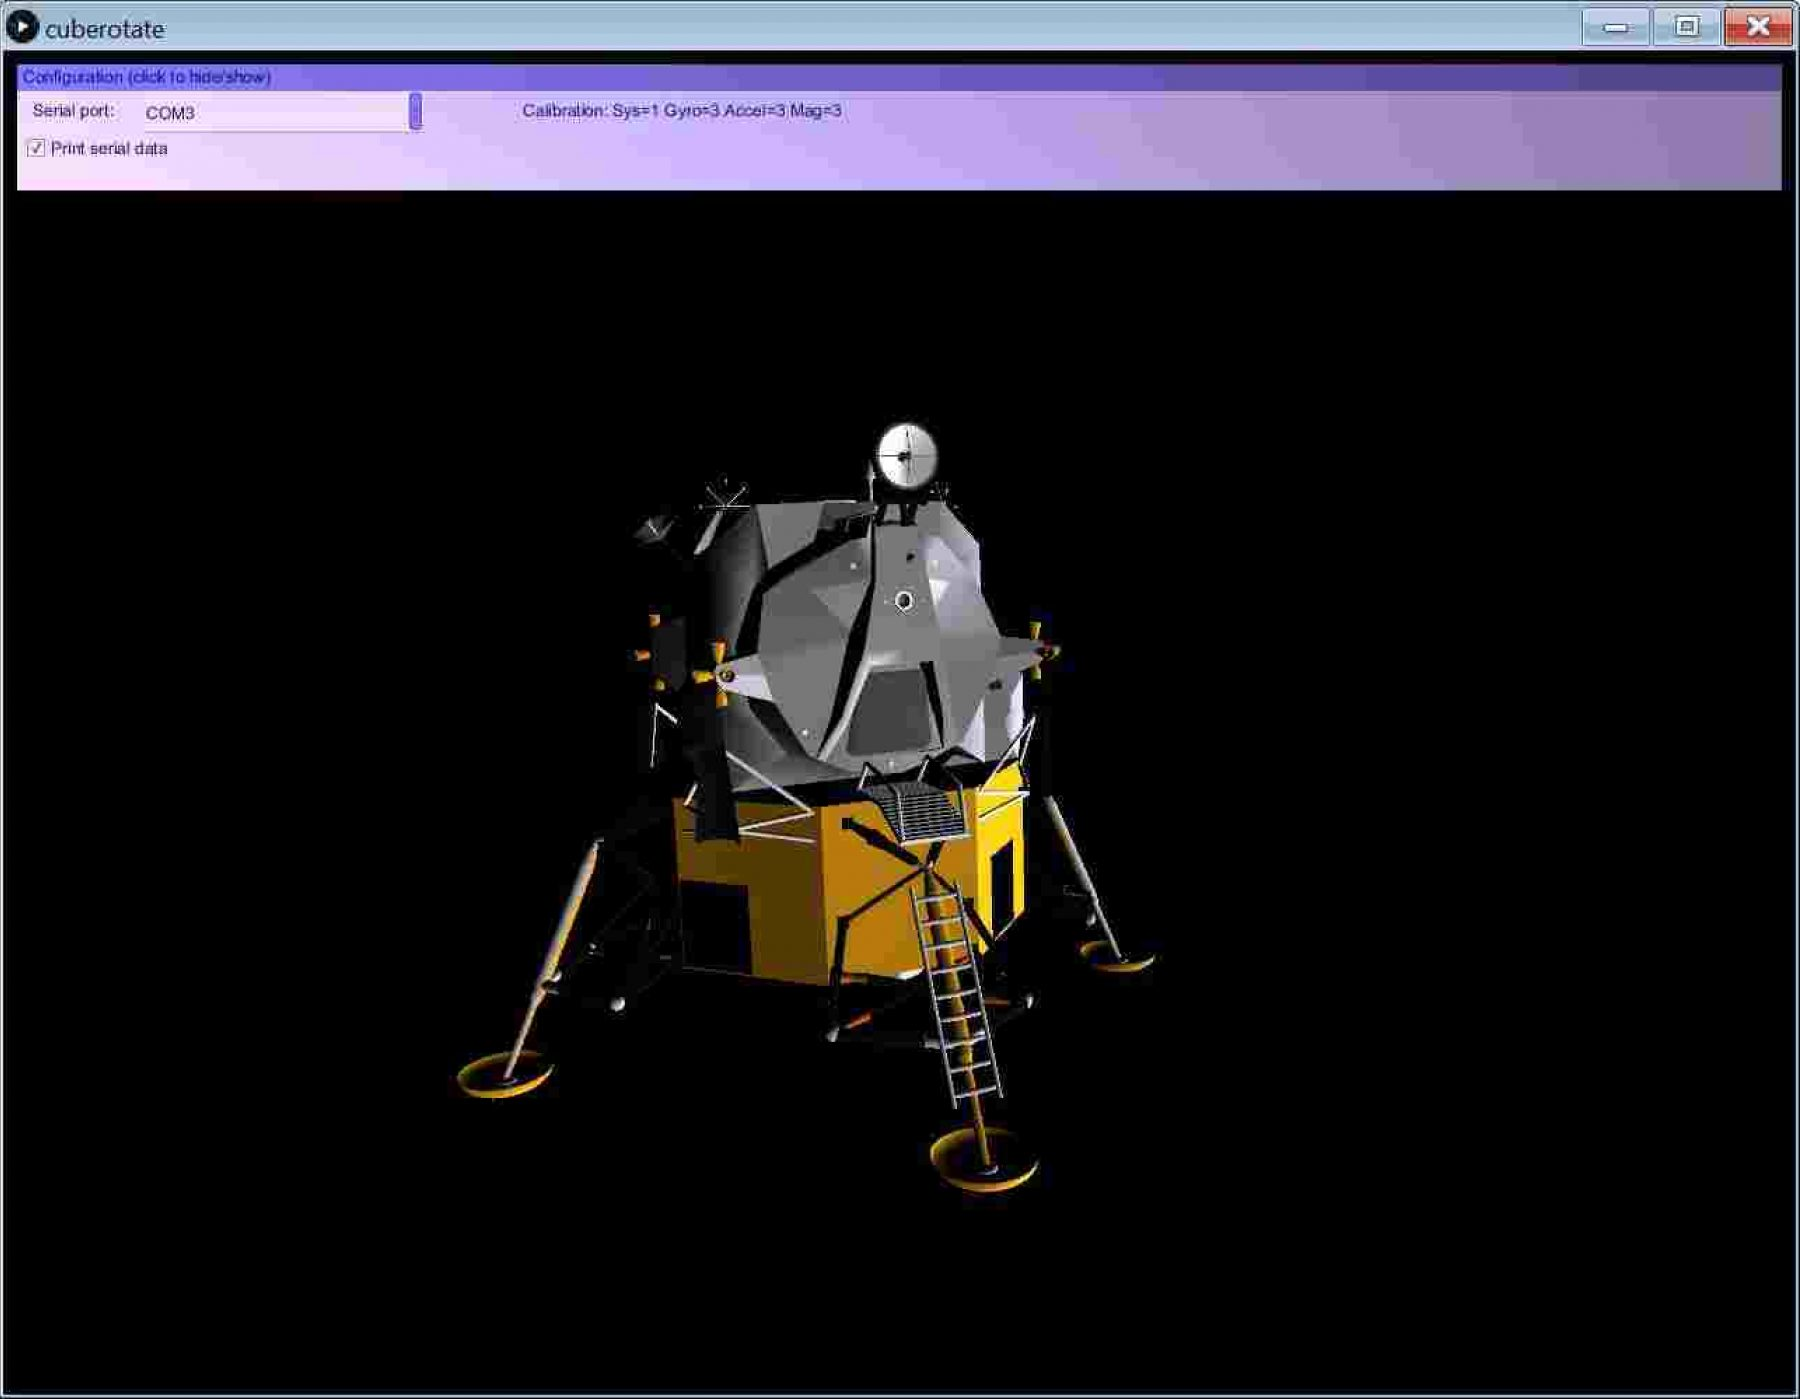 Driving a 3D Lunar Lander Model with ARM and Ada - The AdaCore Blog